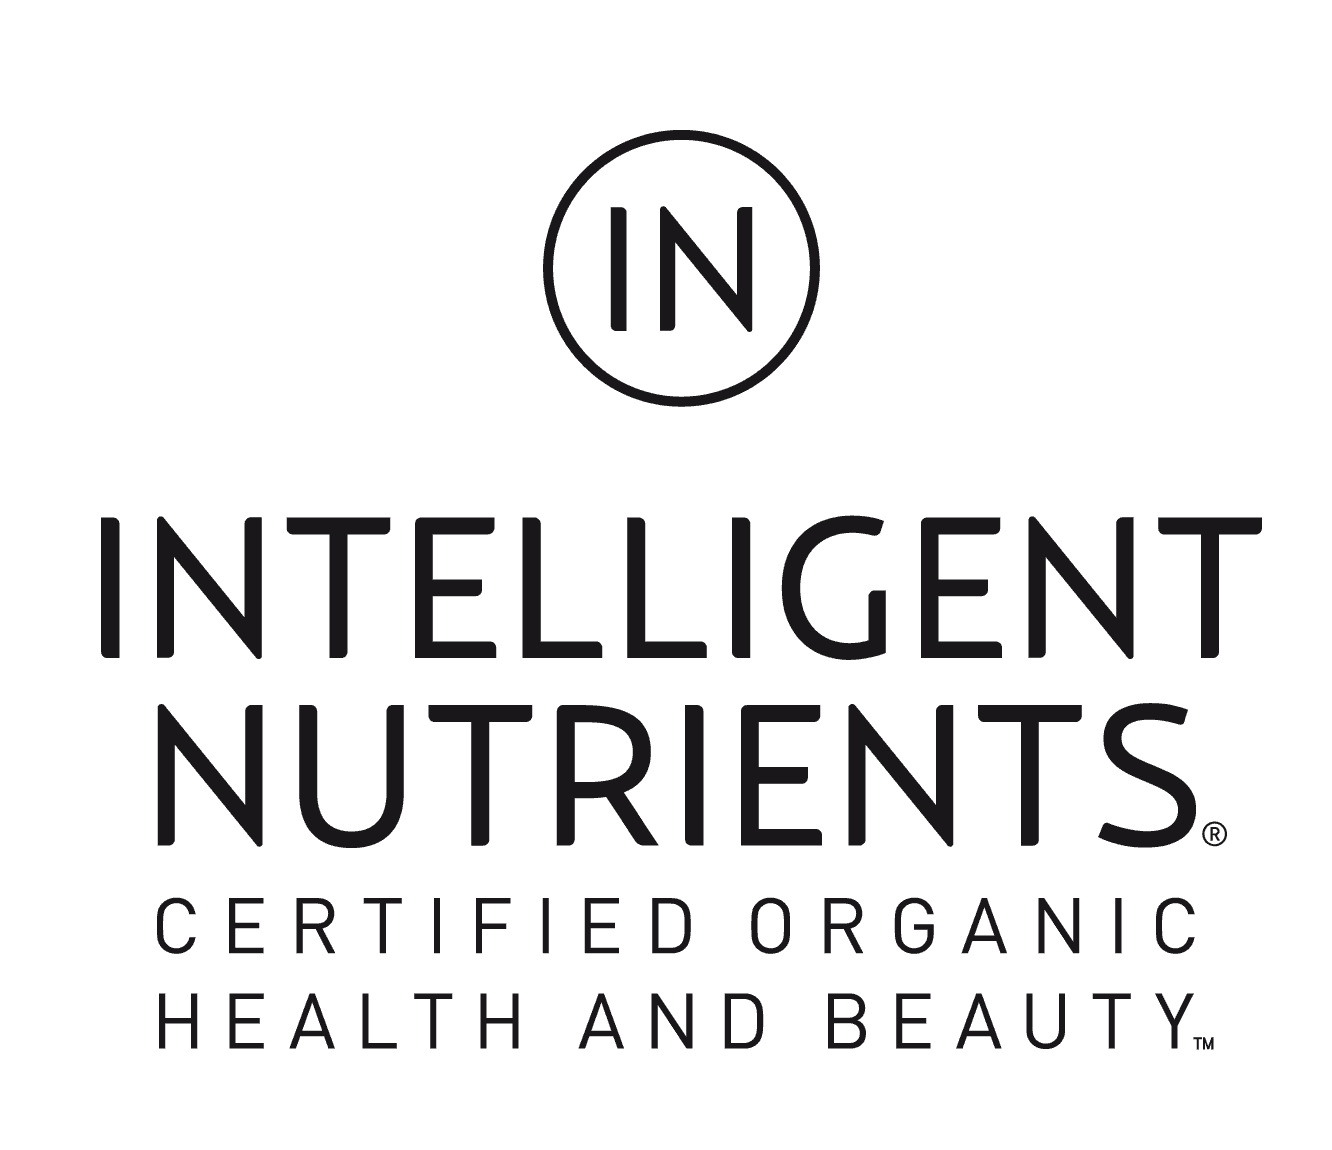 Intelligent nutrients in Chichester